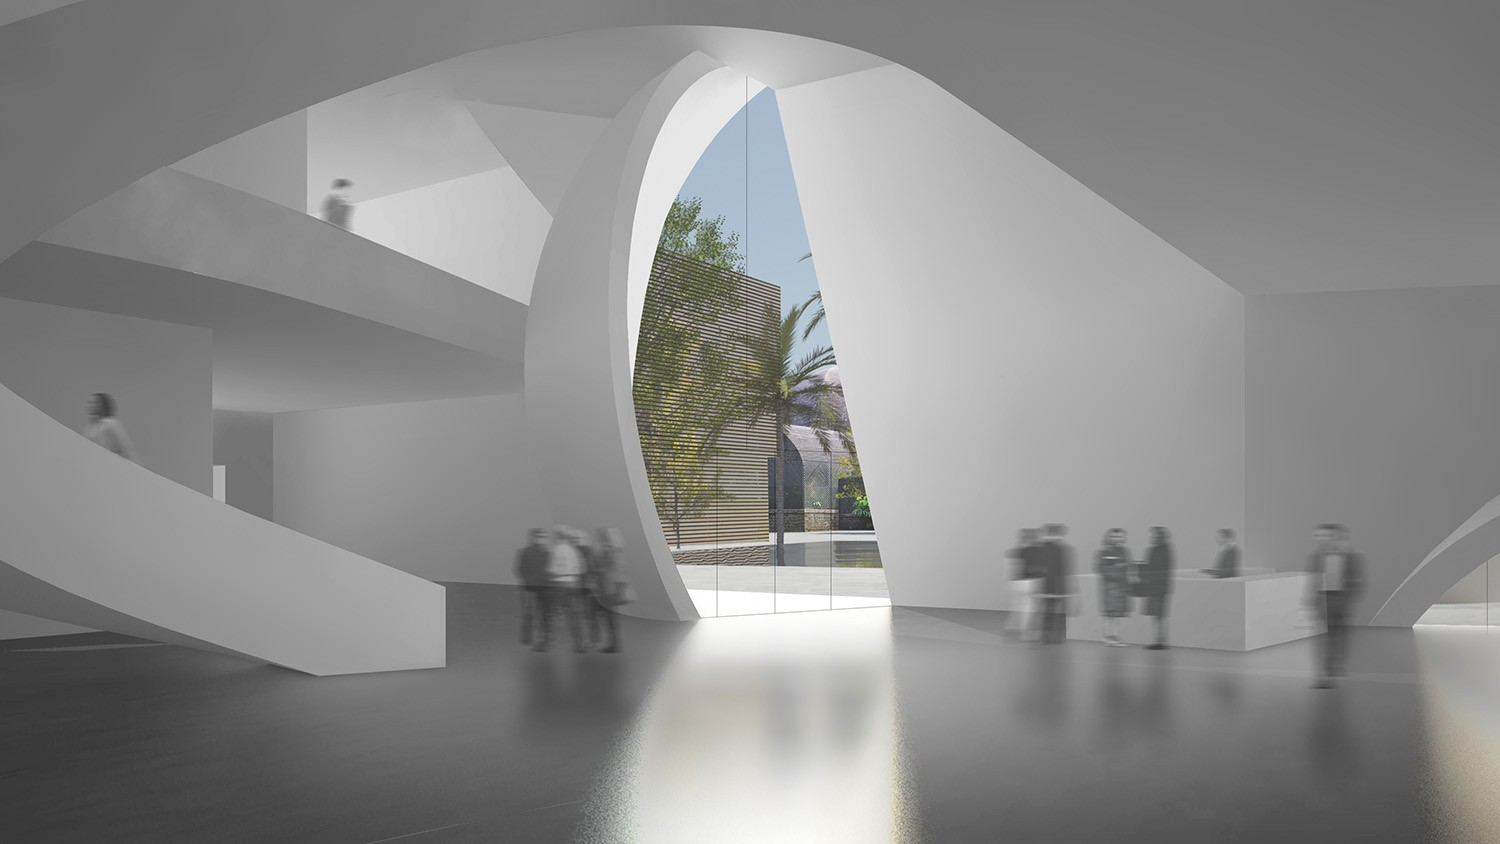 https://s3.us-east-2.amazonaws.com/steven-holl/uploads/projects/project-images/StevenHollArchitects_Mumbai_SHA_04_Lobby view_WH.jpg